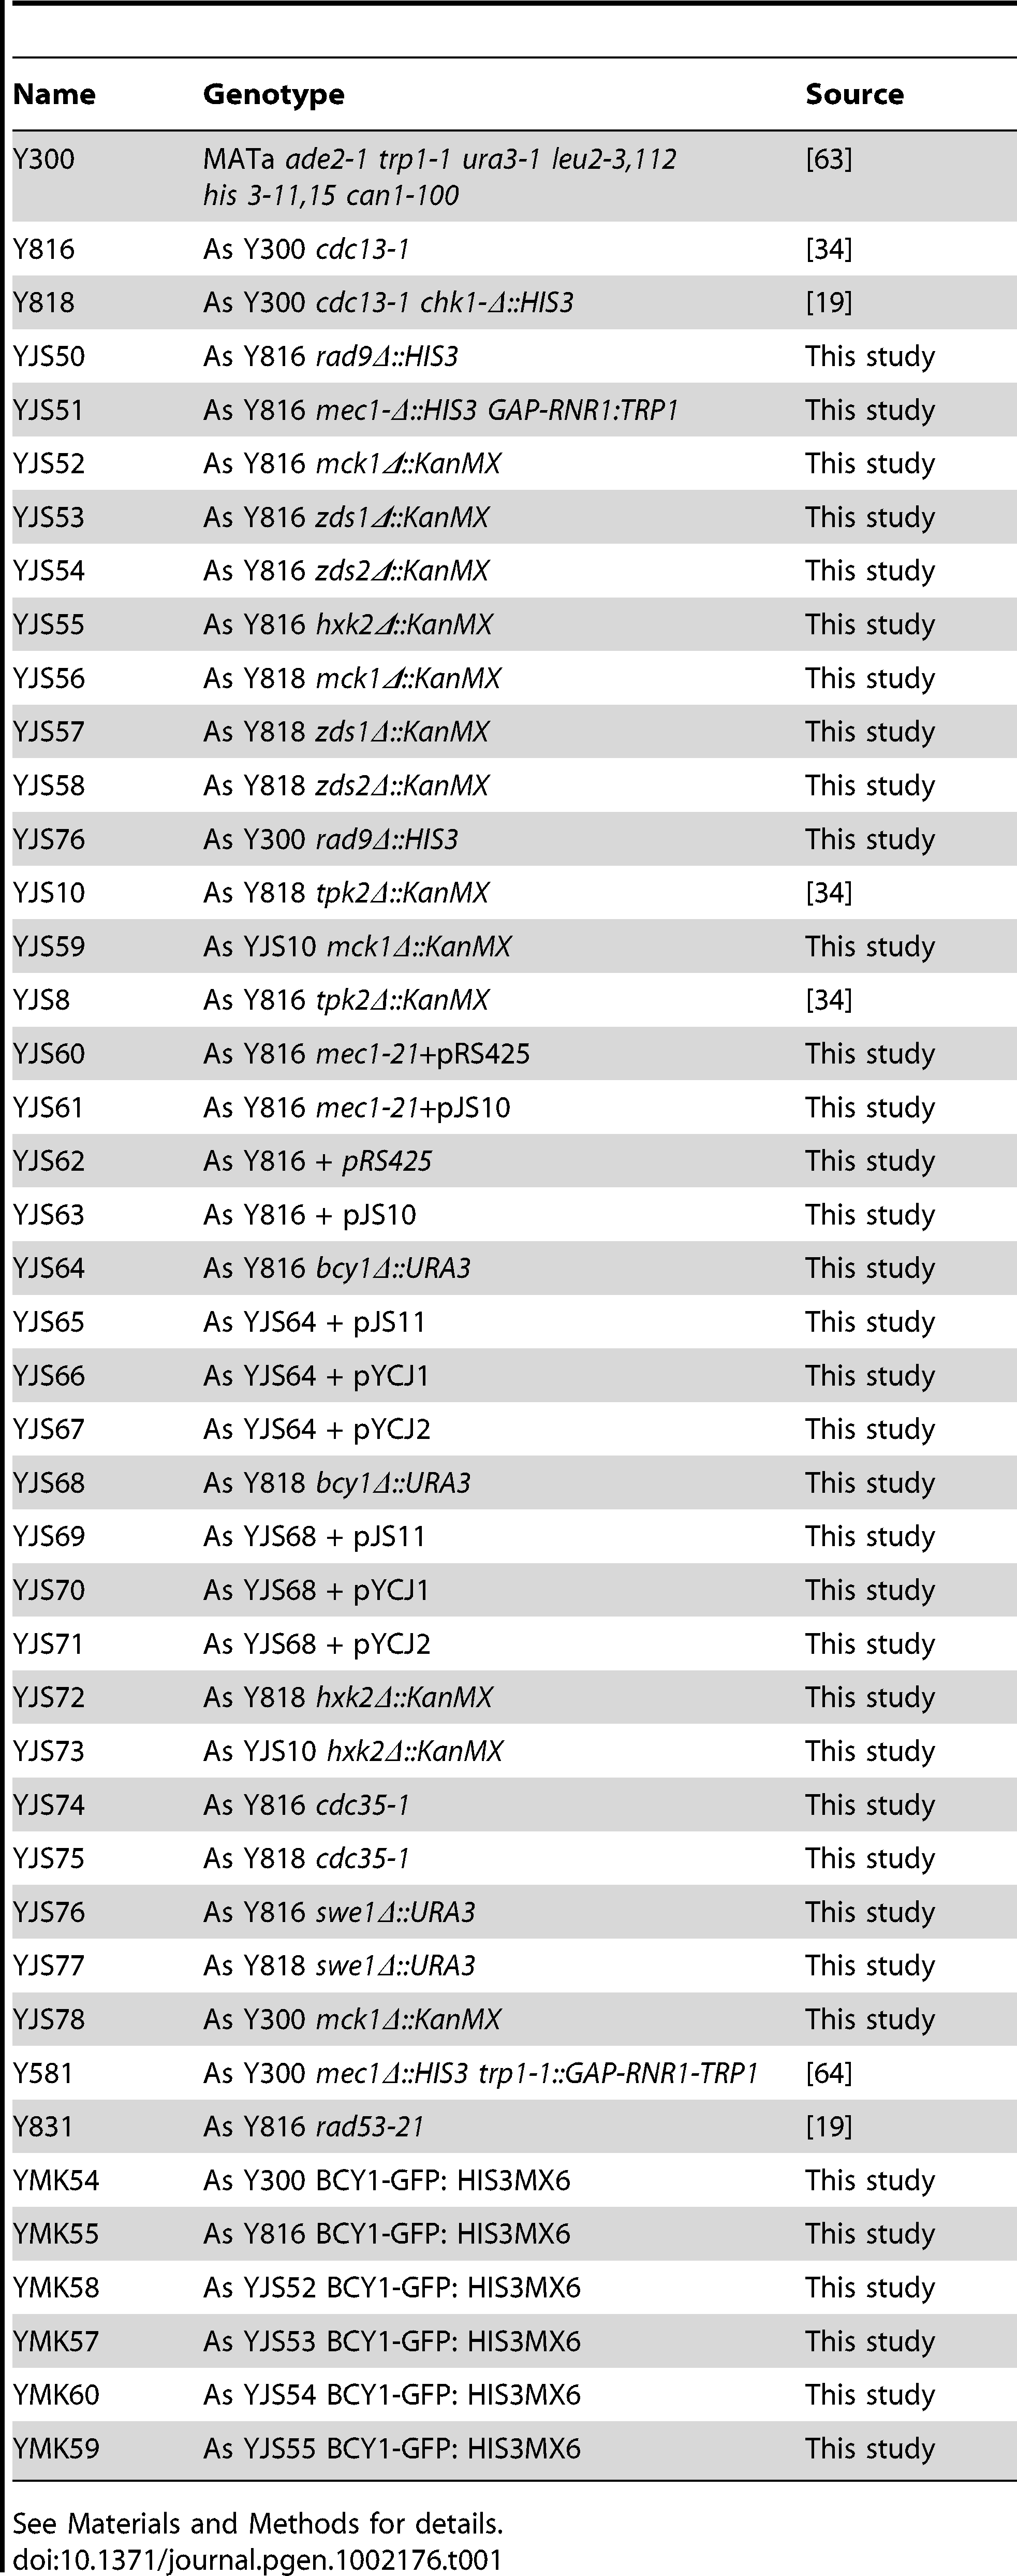 Yeast strains used in these studies.